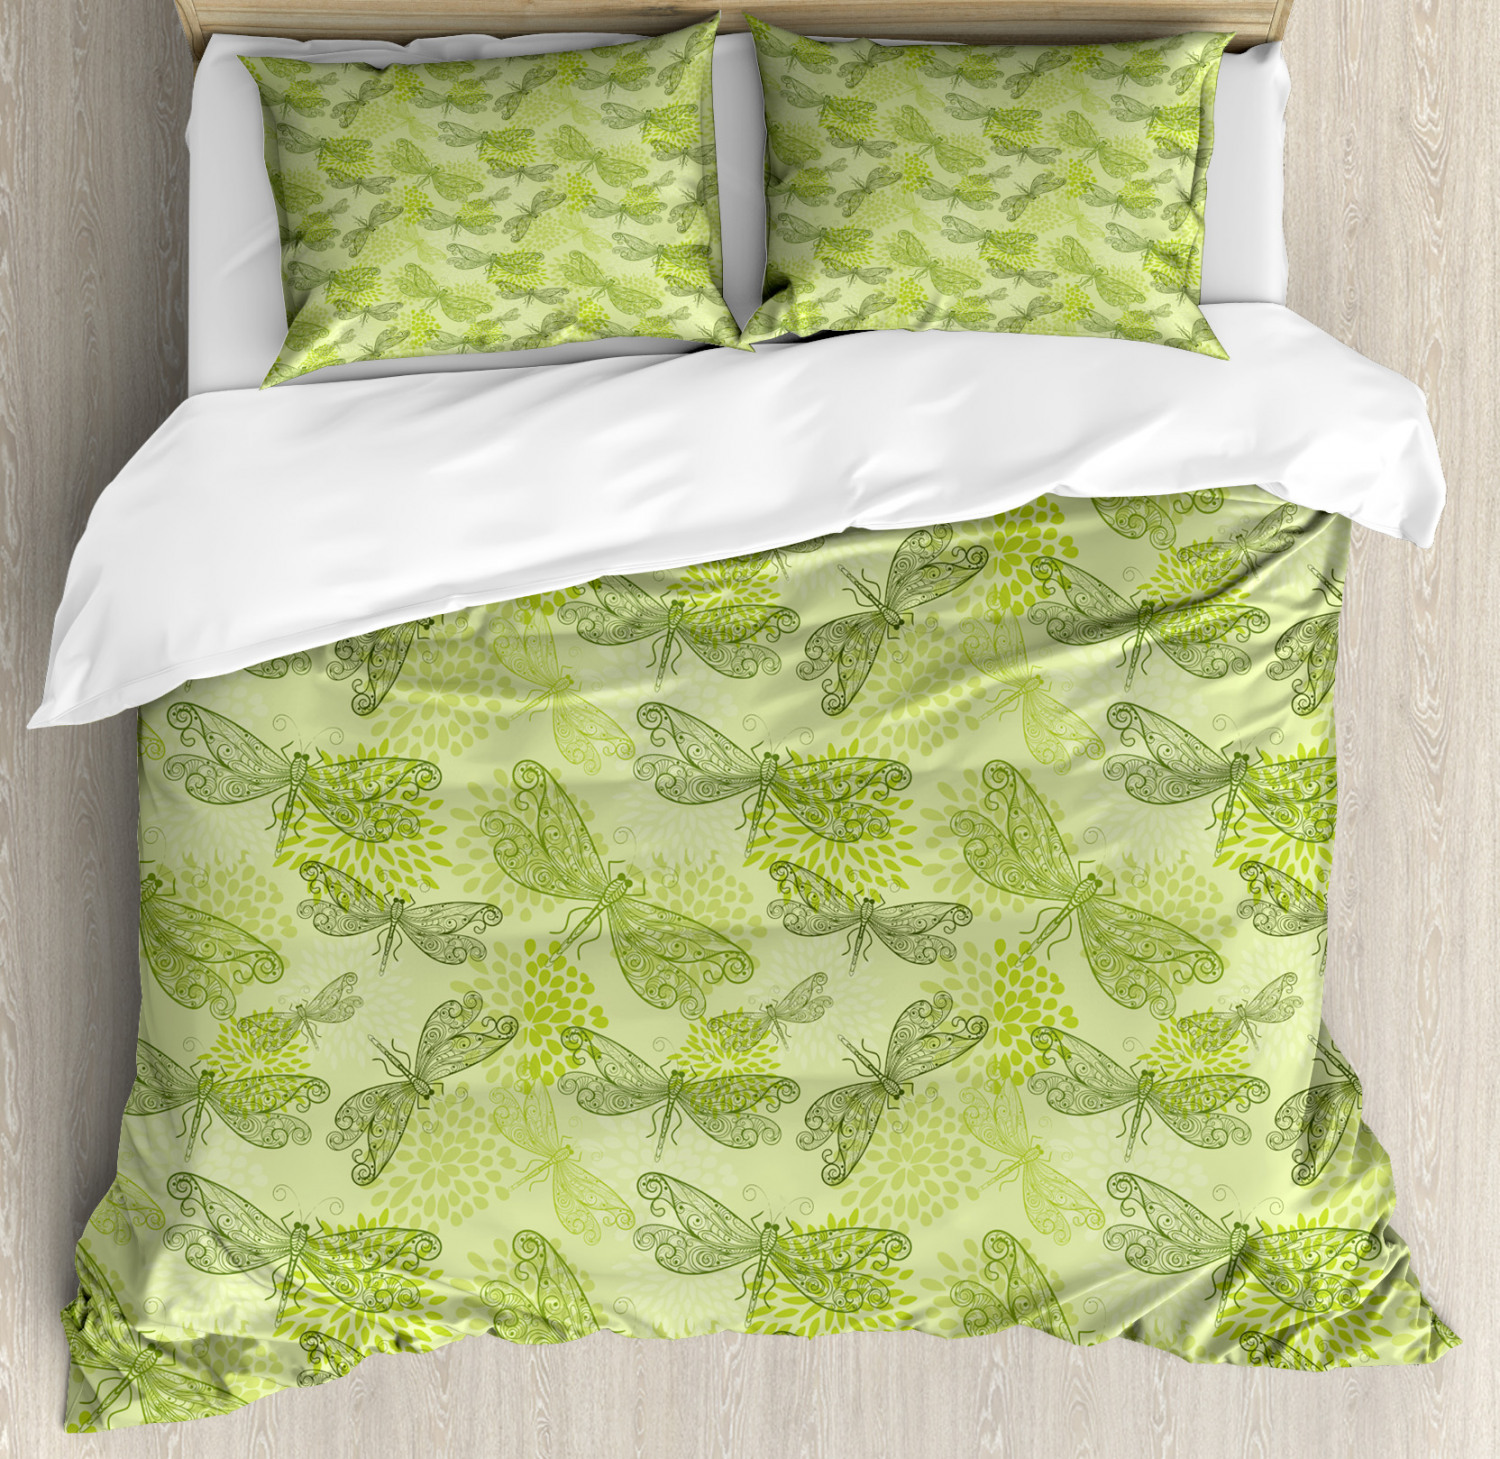 Sketchy Duvet Cover Set with Pillow Shams Floral Dragonfly Wings Print